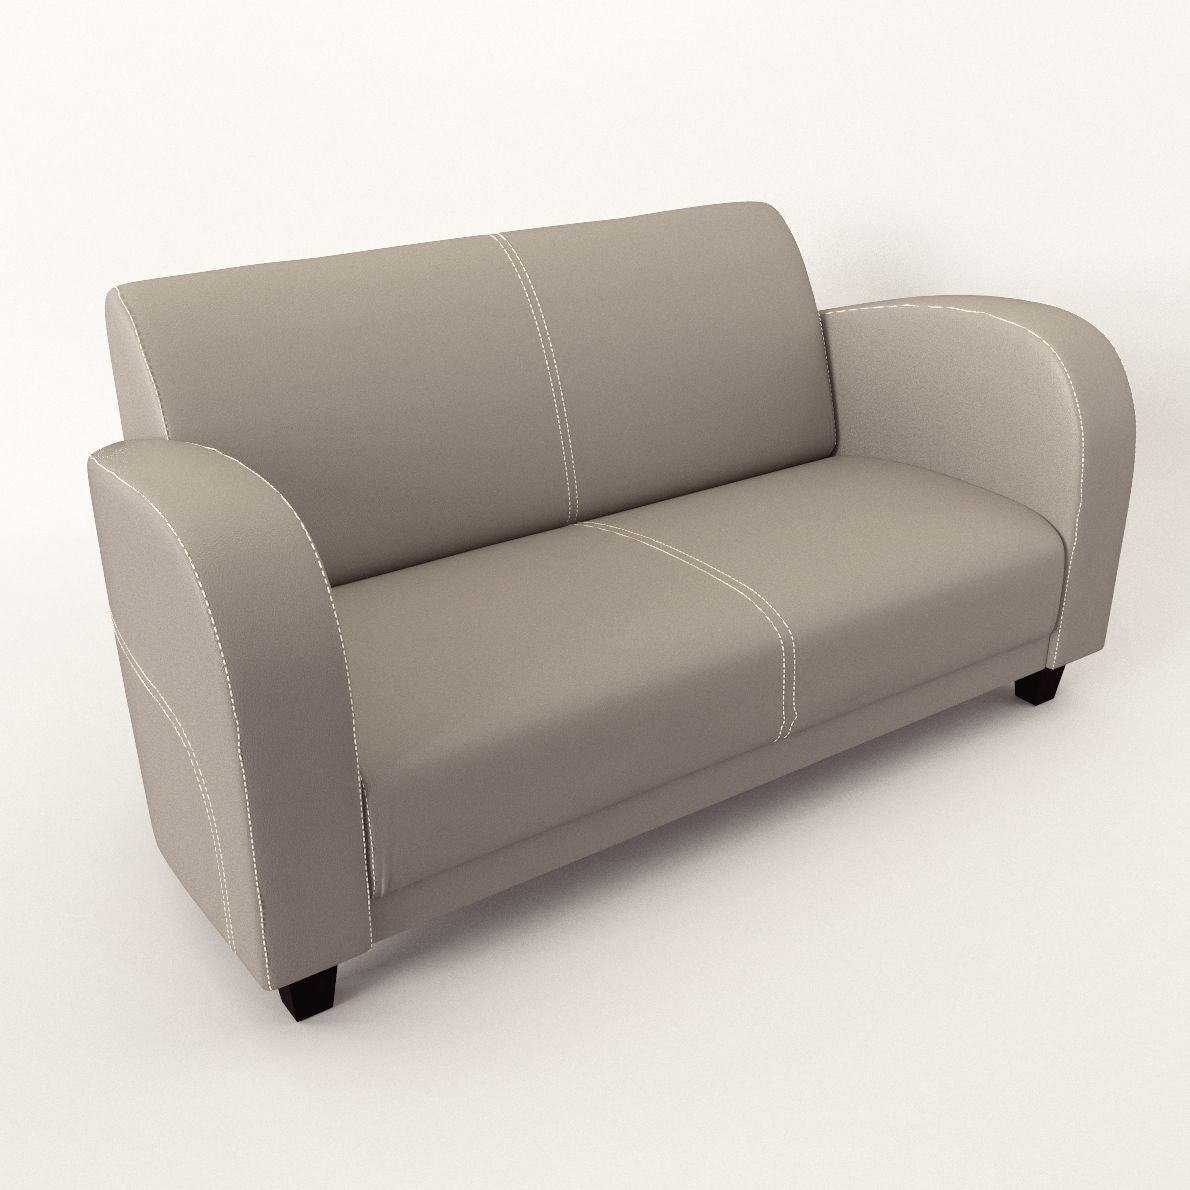 Furniture 3d Sofa New Design Cgtrader